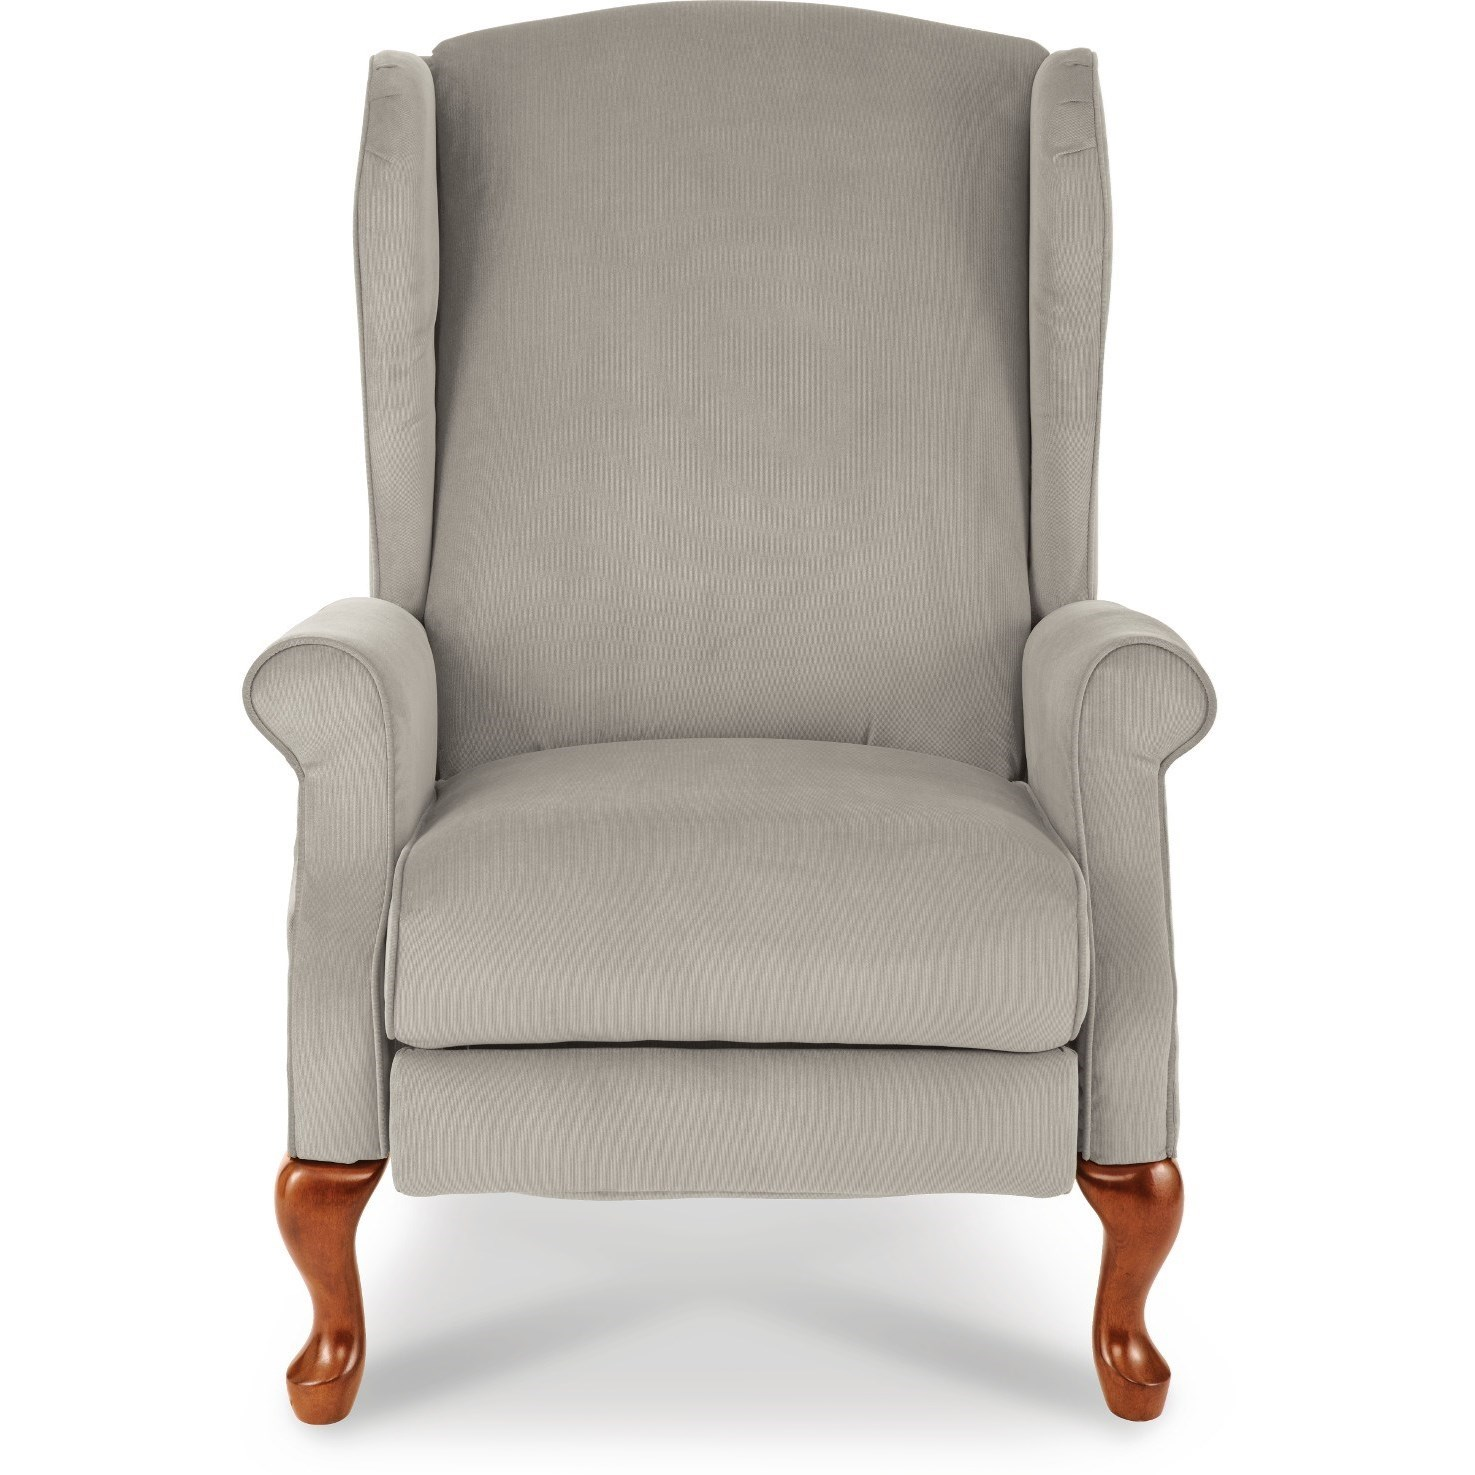 Kimberly Hi Leg Recliner